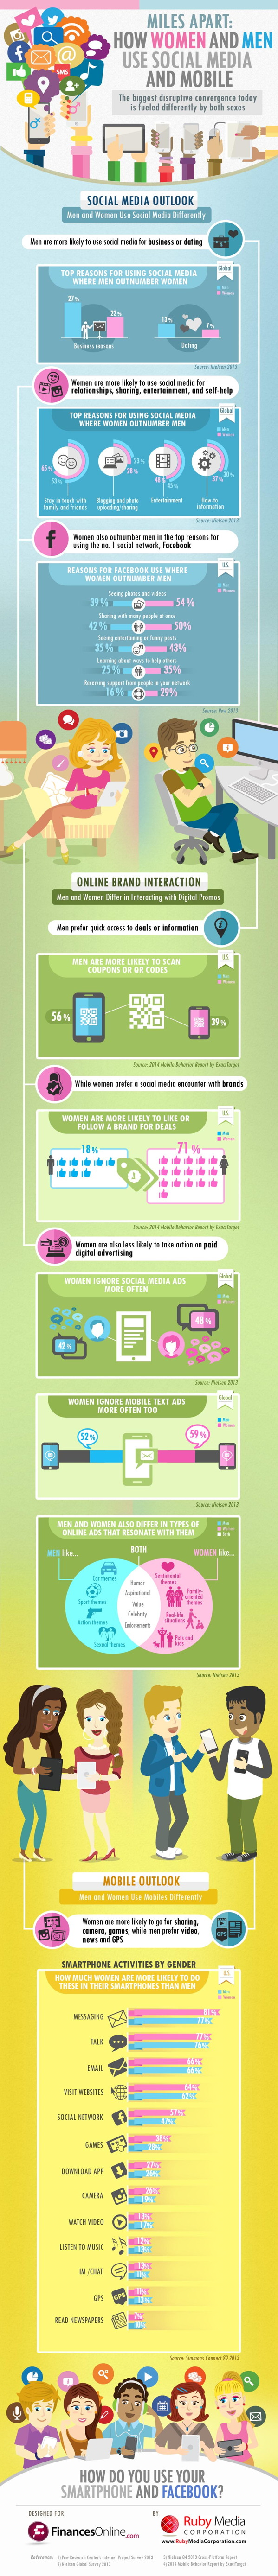 Men and Women Social Media Mobile infographic